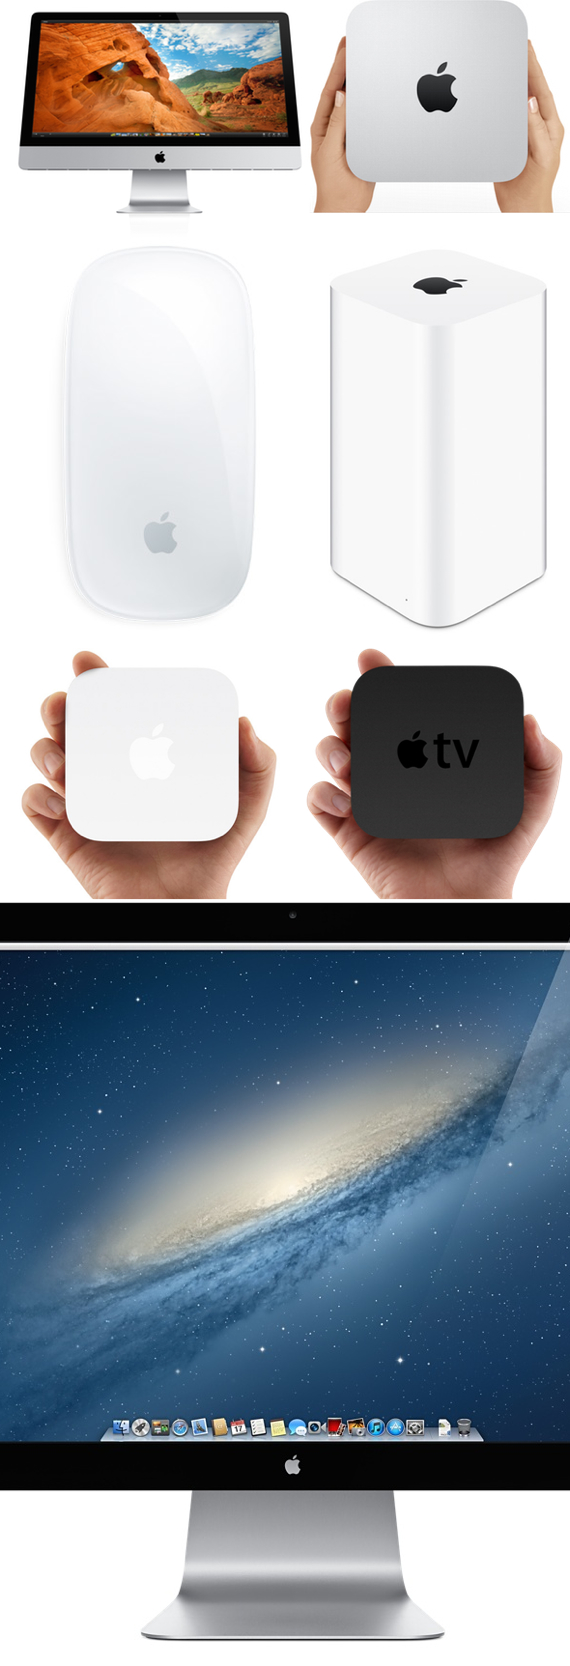 Apple logoed products